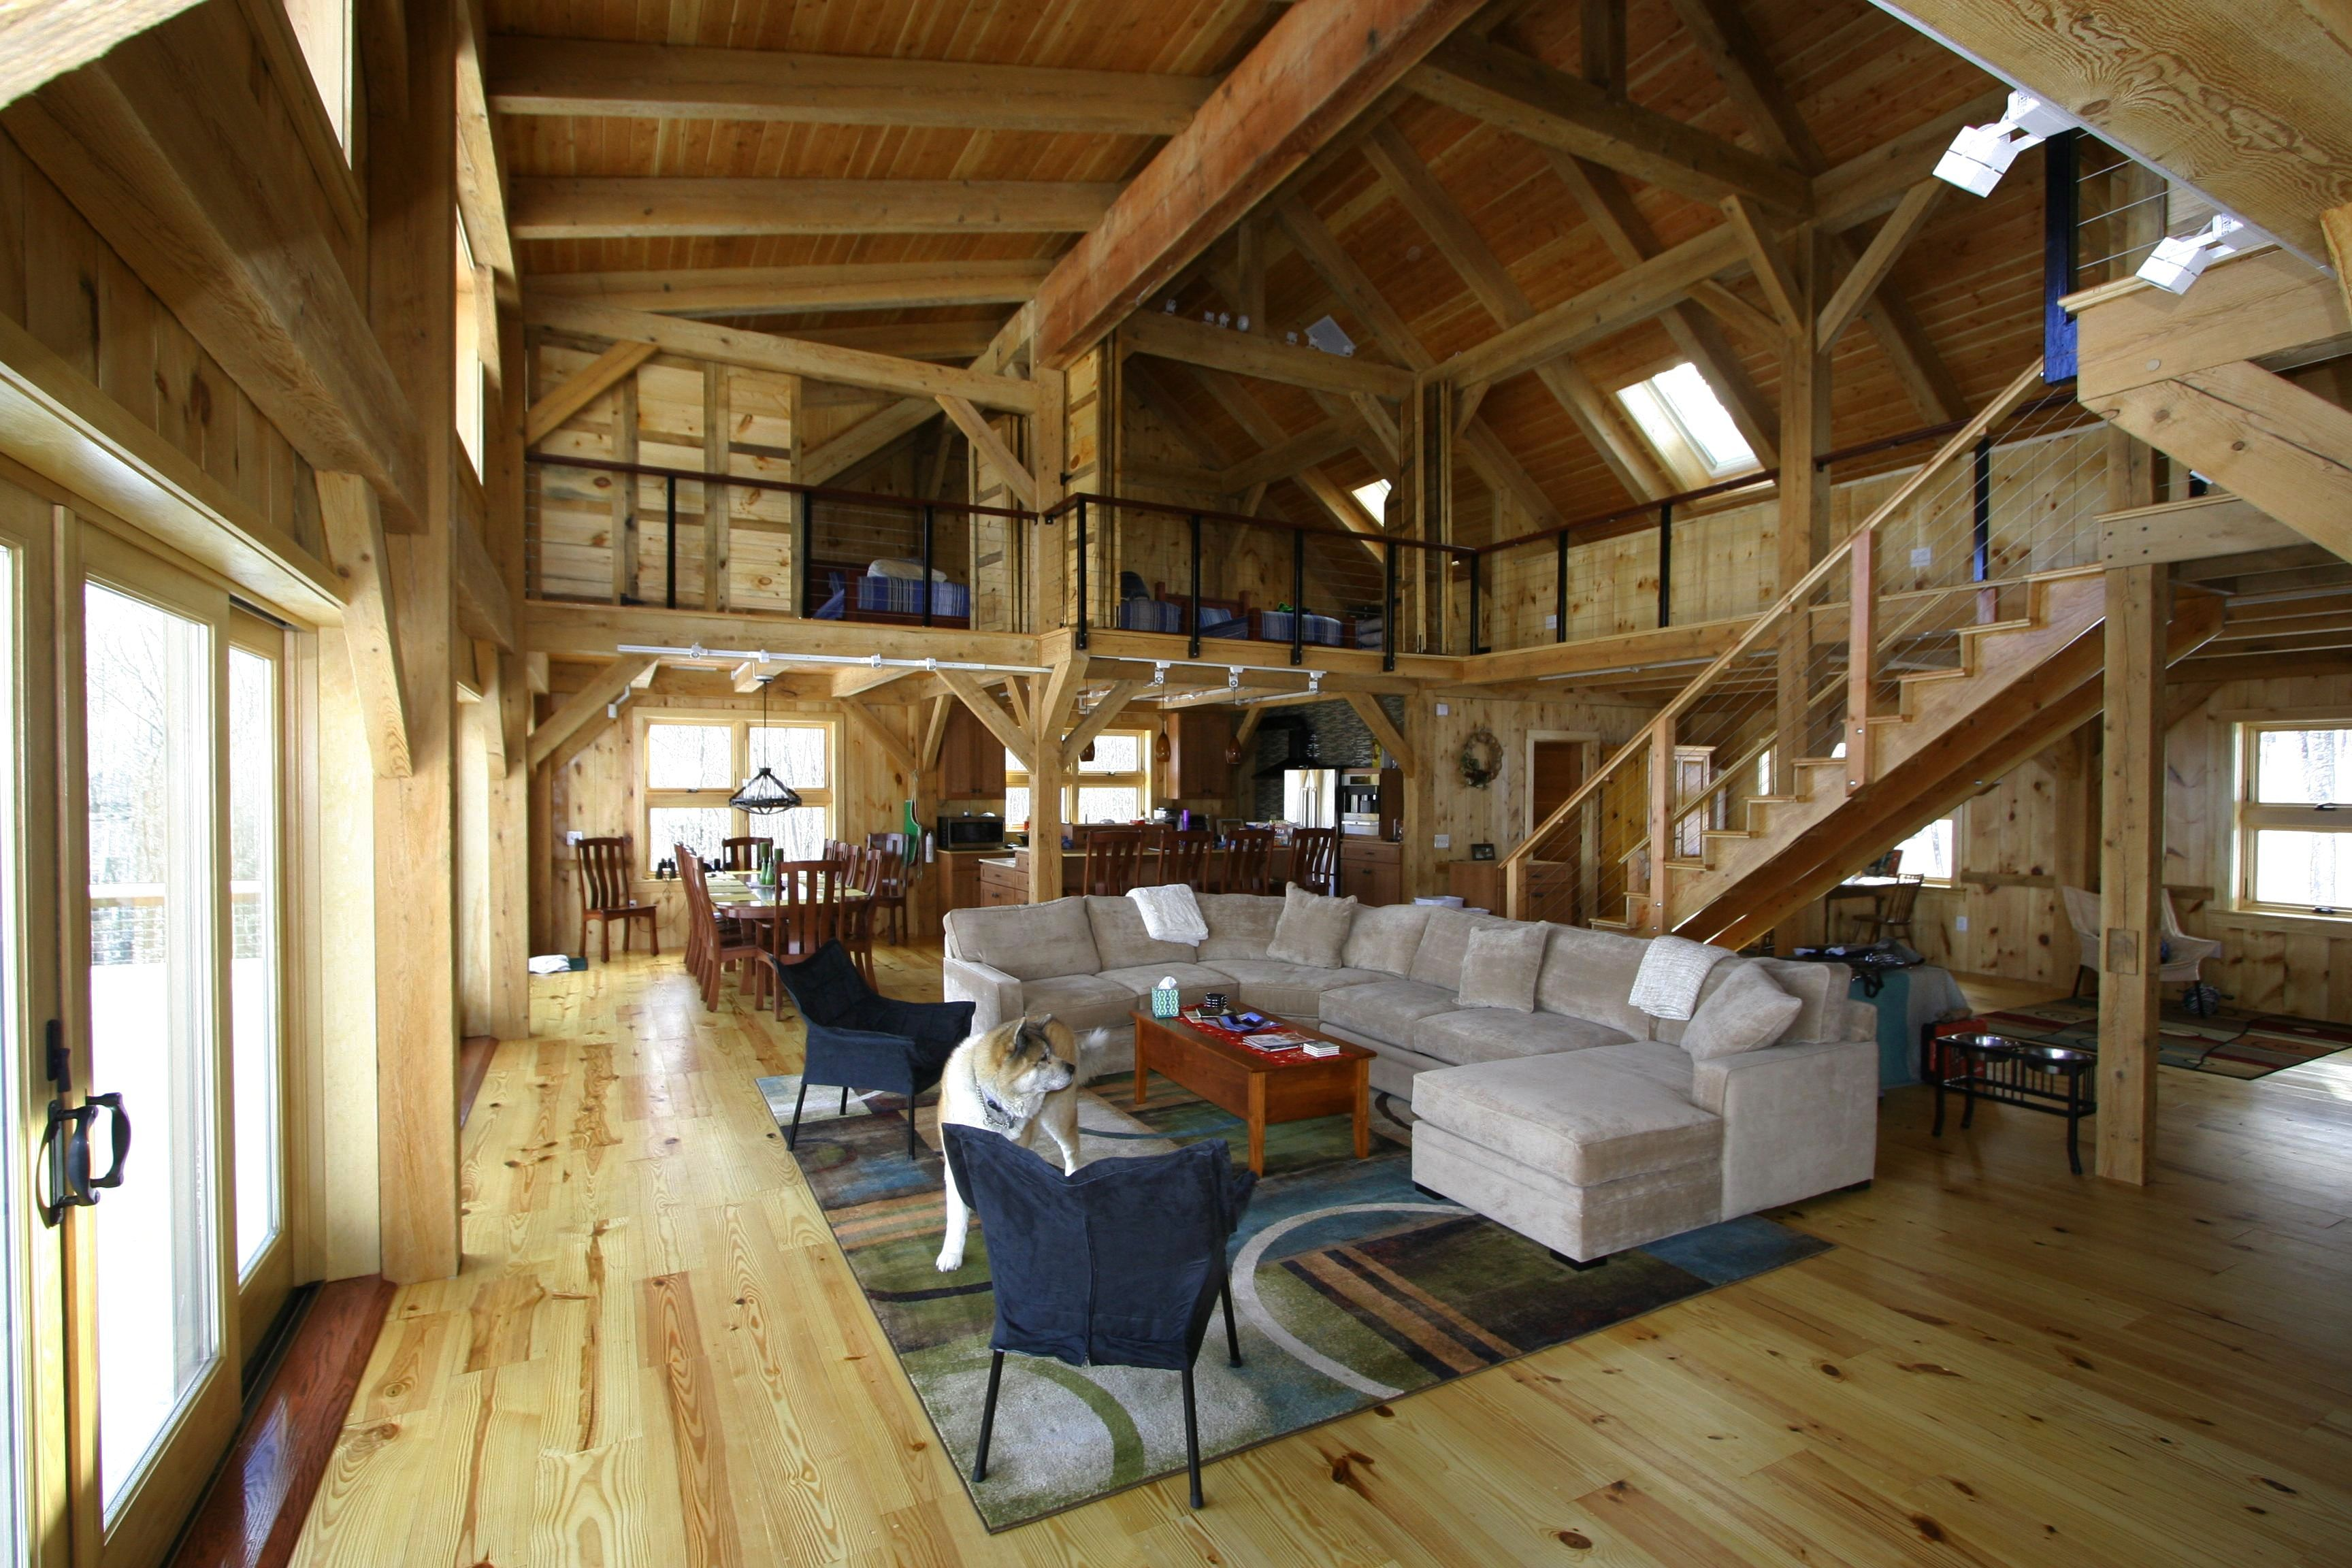 Pole barn house inside pictures of log